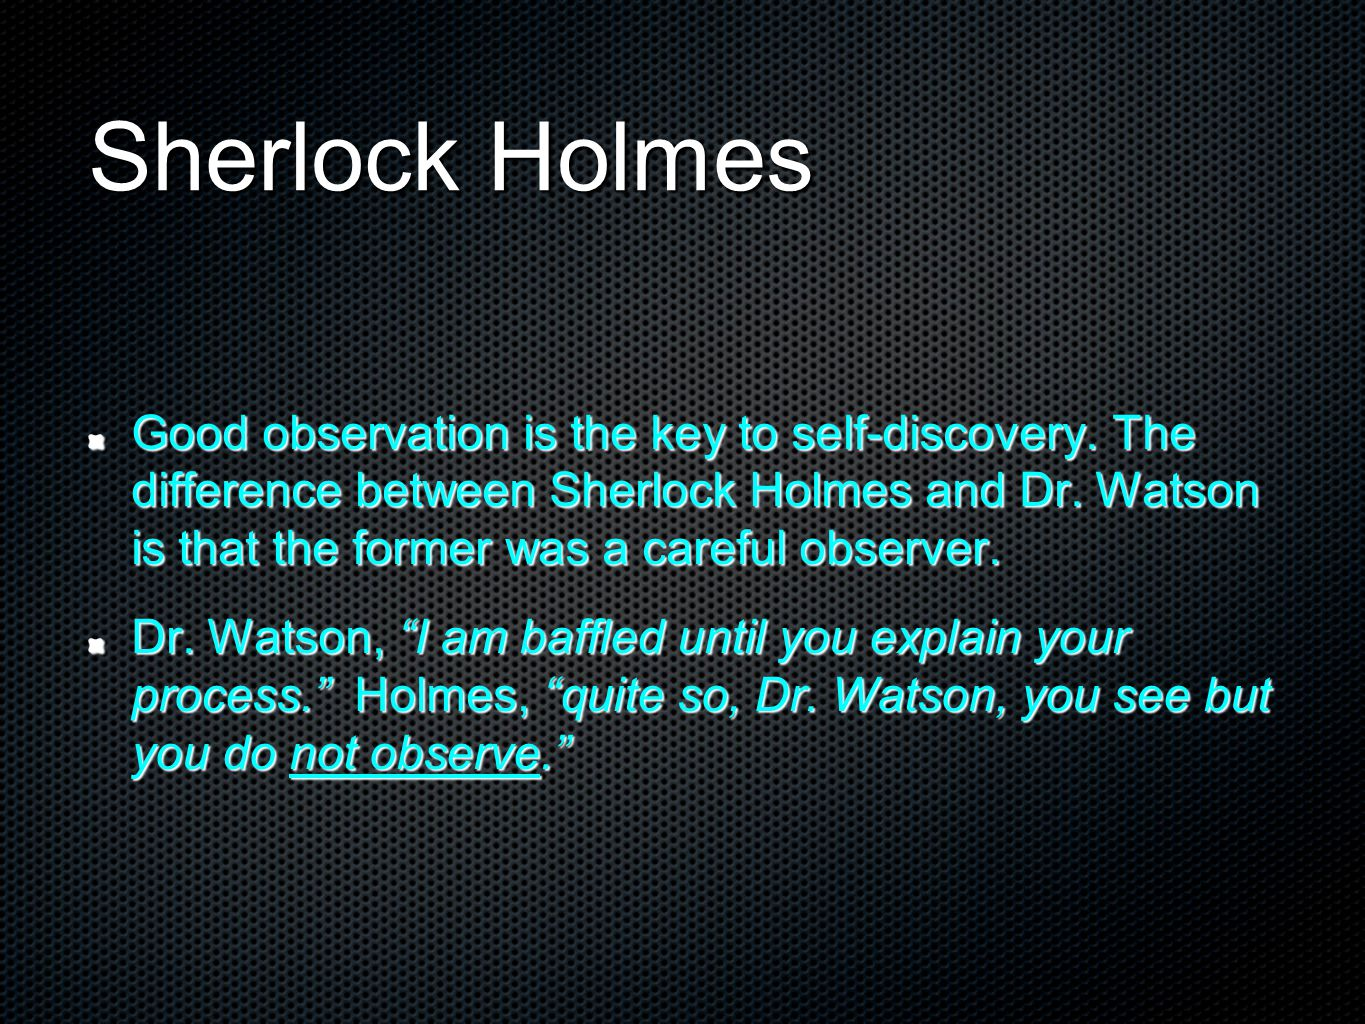 Sherlock Holmes Good observation is the key to self-discovery. The difference between Sherlock Holmes and Dr. Watson is that the former was a careful